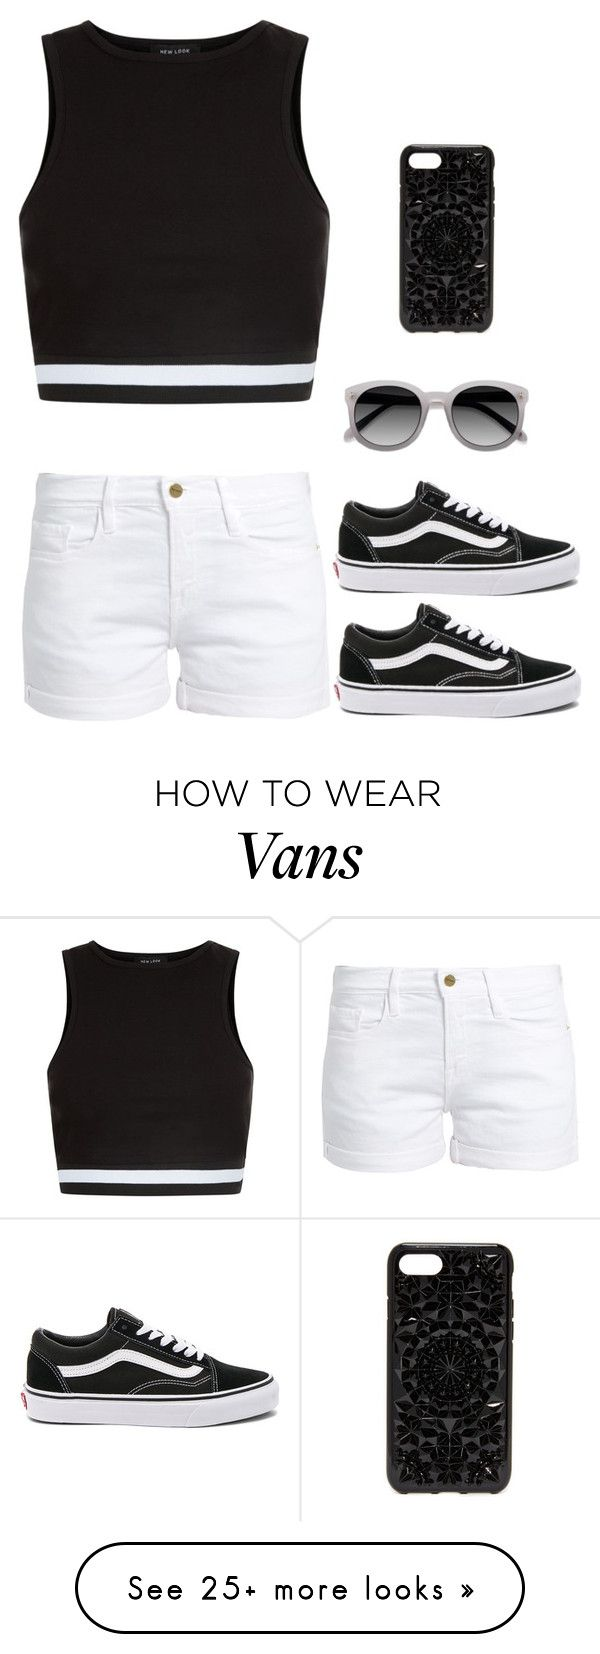 """Hanging out with Eric #33"" by luka1207 on Polyvore featuring New Look, Frame, Vans, EyeBuyDirect.com and Felony Case"